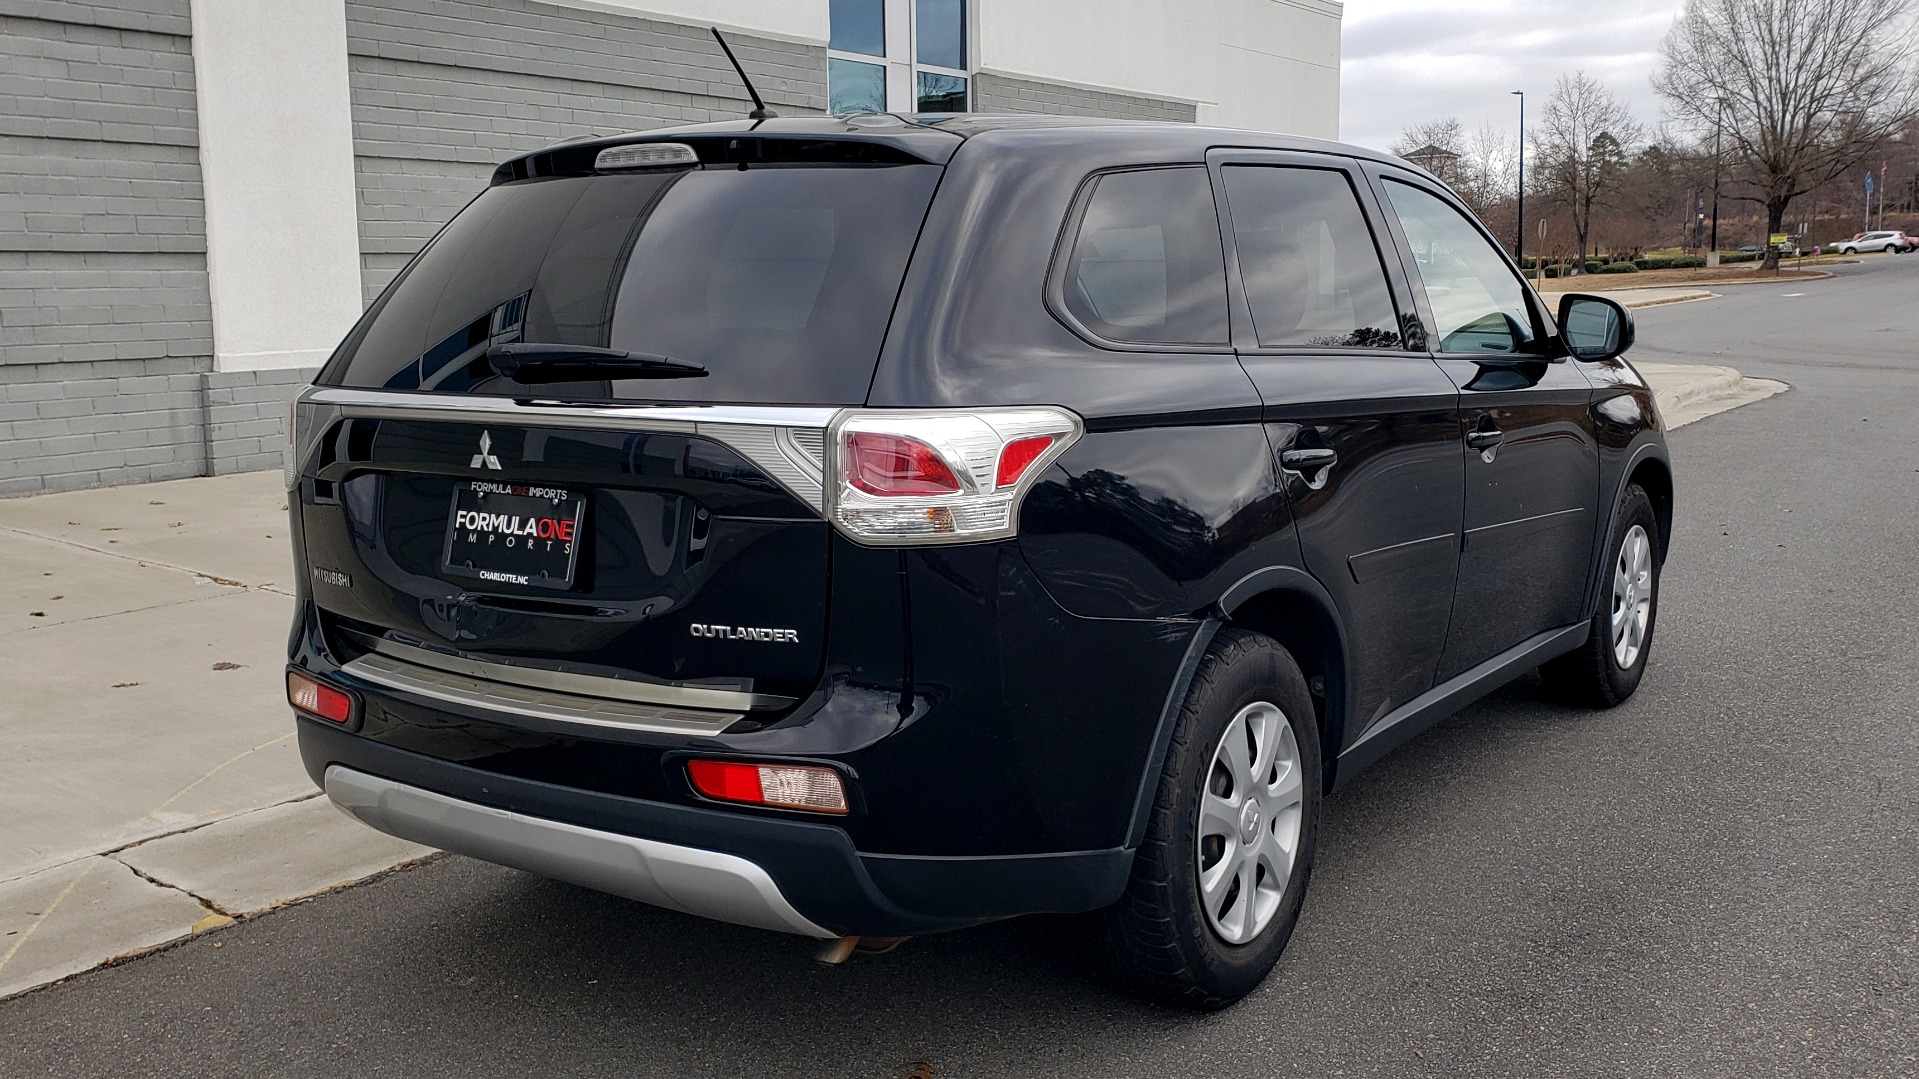 Used 2015 Mitsubishi OUTLANDER ES 2.4L SUV / CVT / FWD / KEYLESS ENTRY / 16-IN WHEELS for sale $12,995 at Formula Imports in Charlotte NC 28227 6